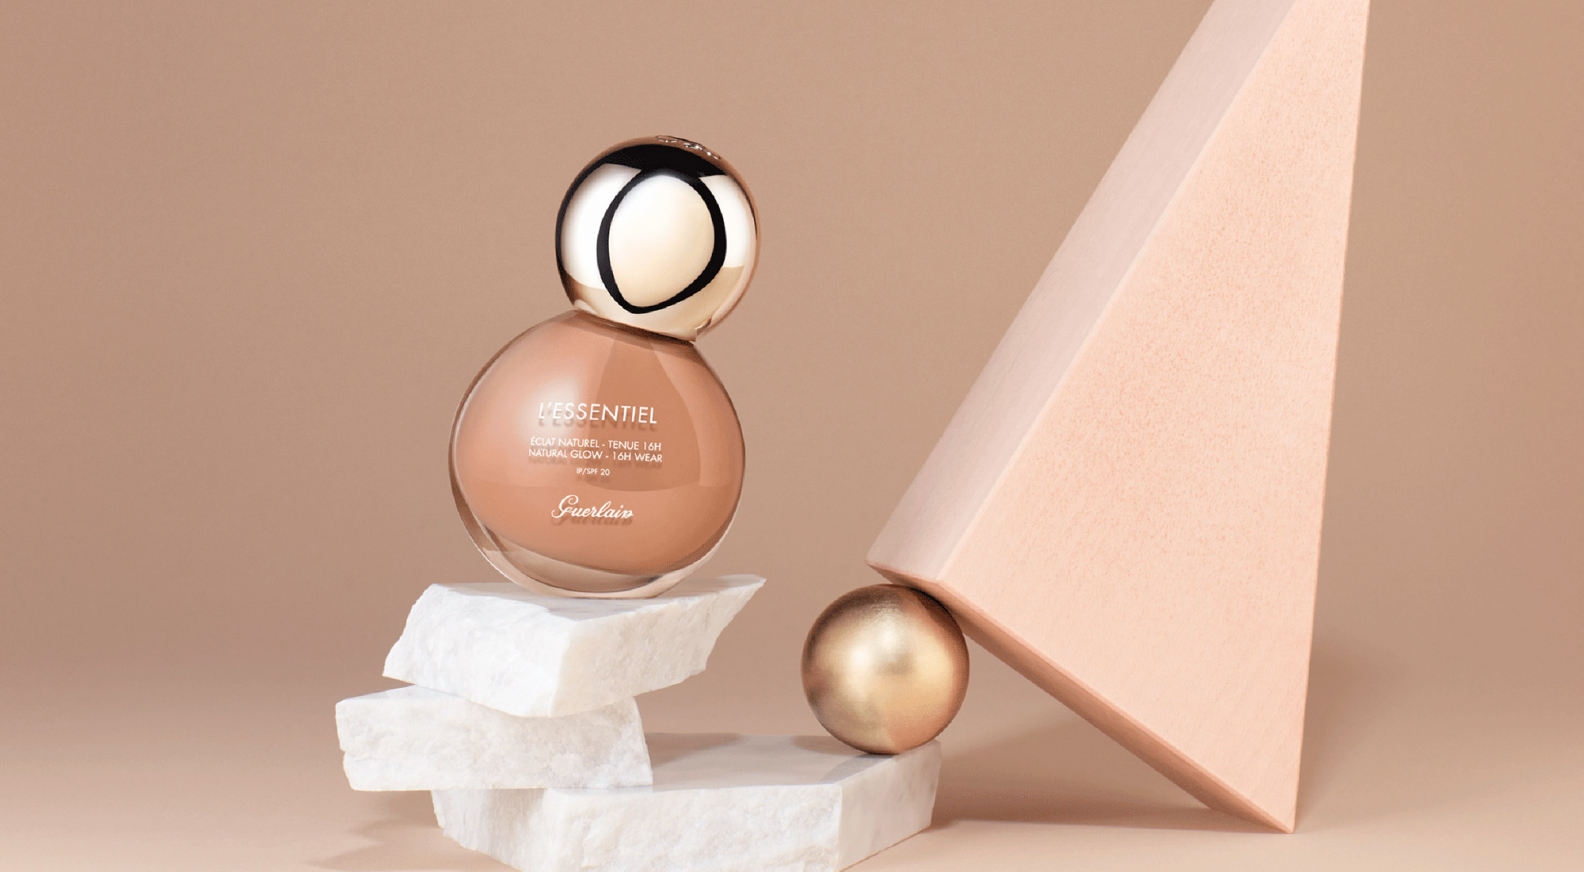 Guerlain L'Essential Foundation